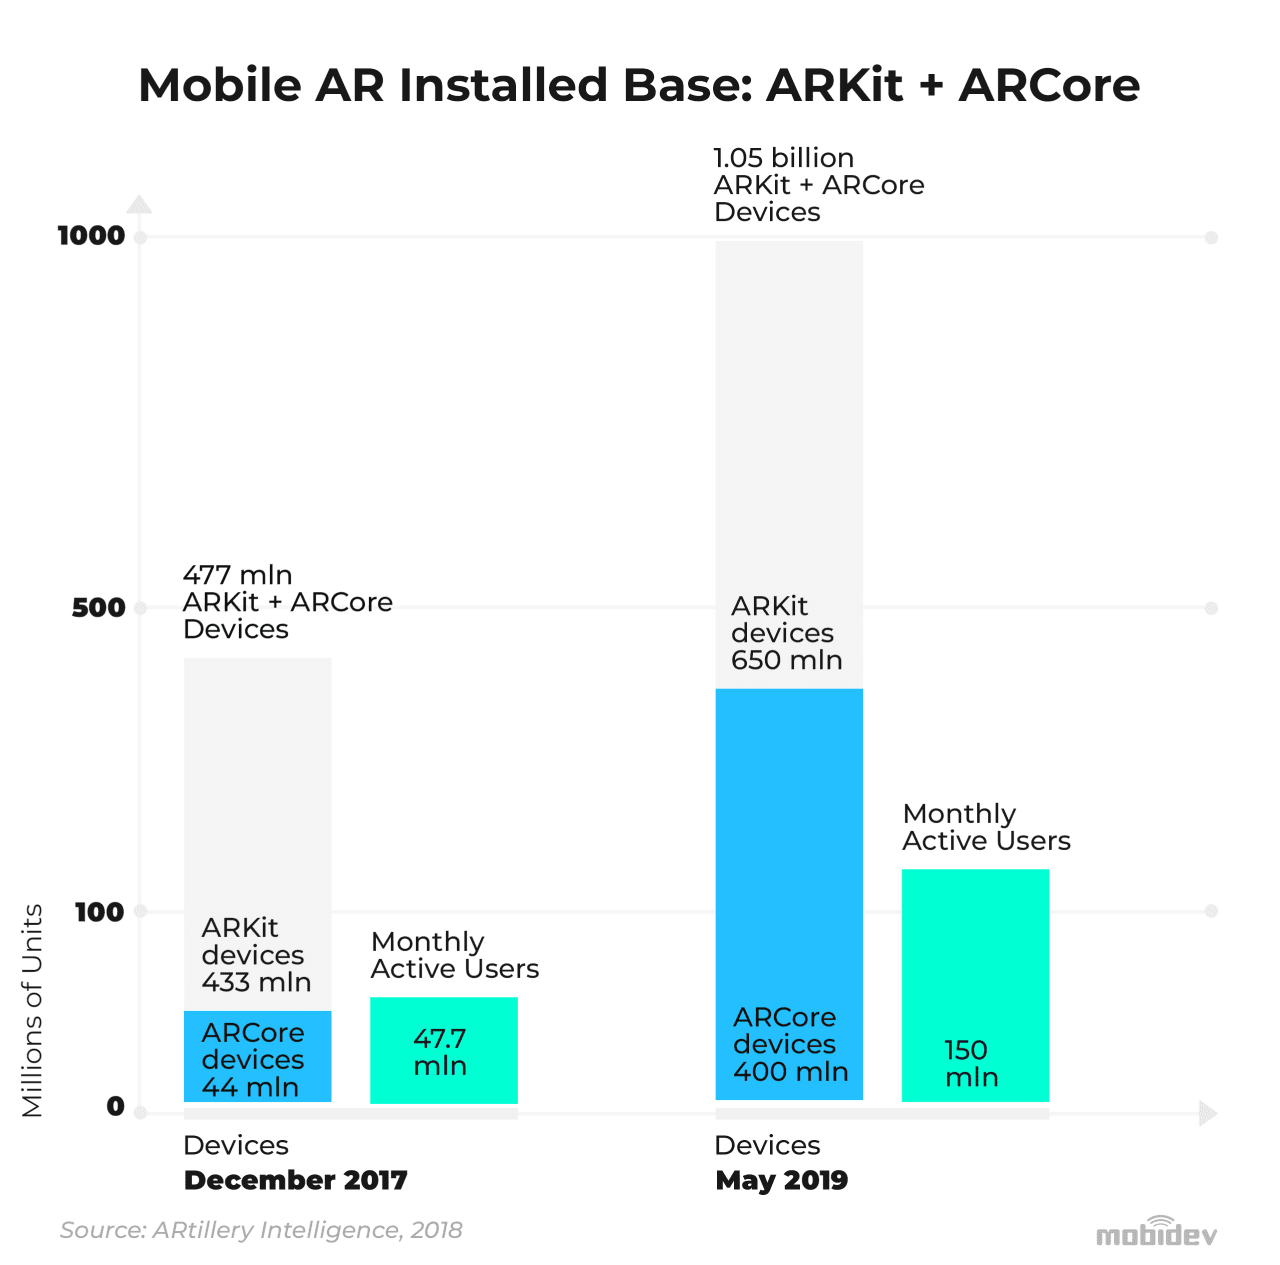 Mobile AR installed base for ARKit and ARCore in 2017-2019